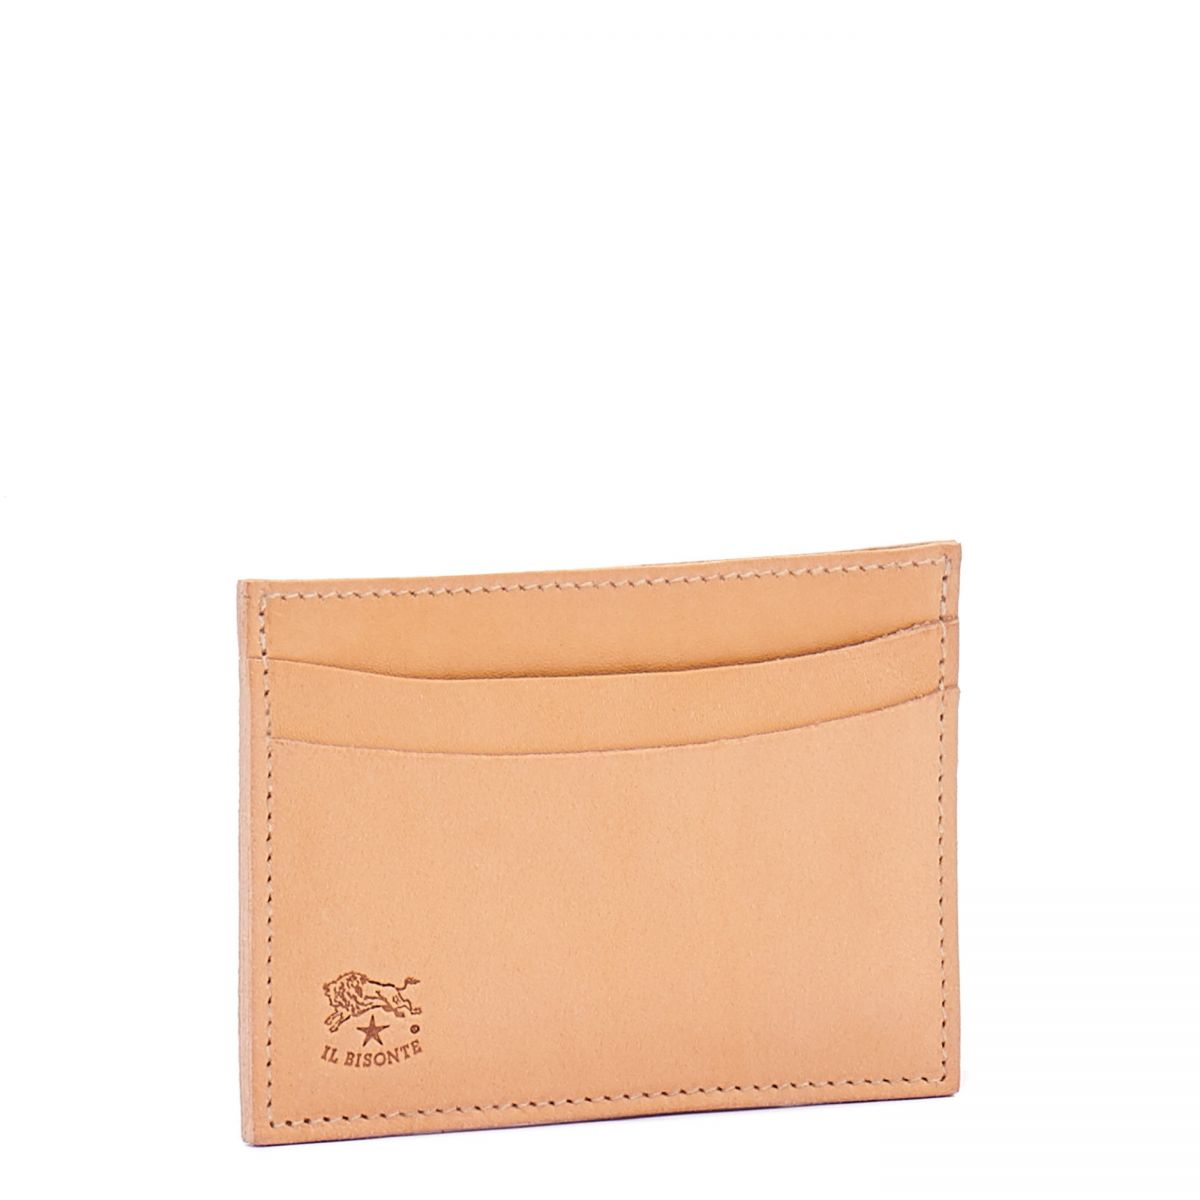 Card Case  in Cowhide Double Leather SCC019 color Natural | Details